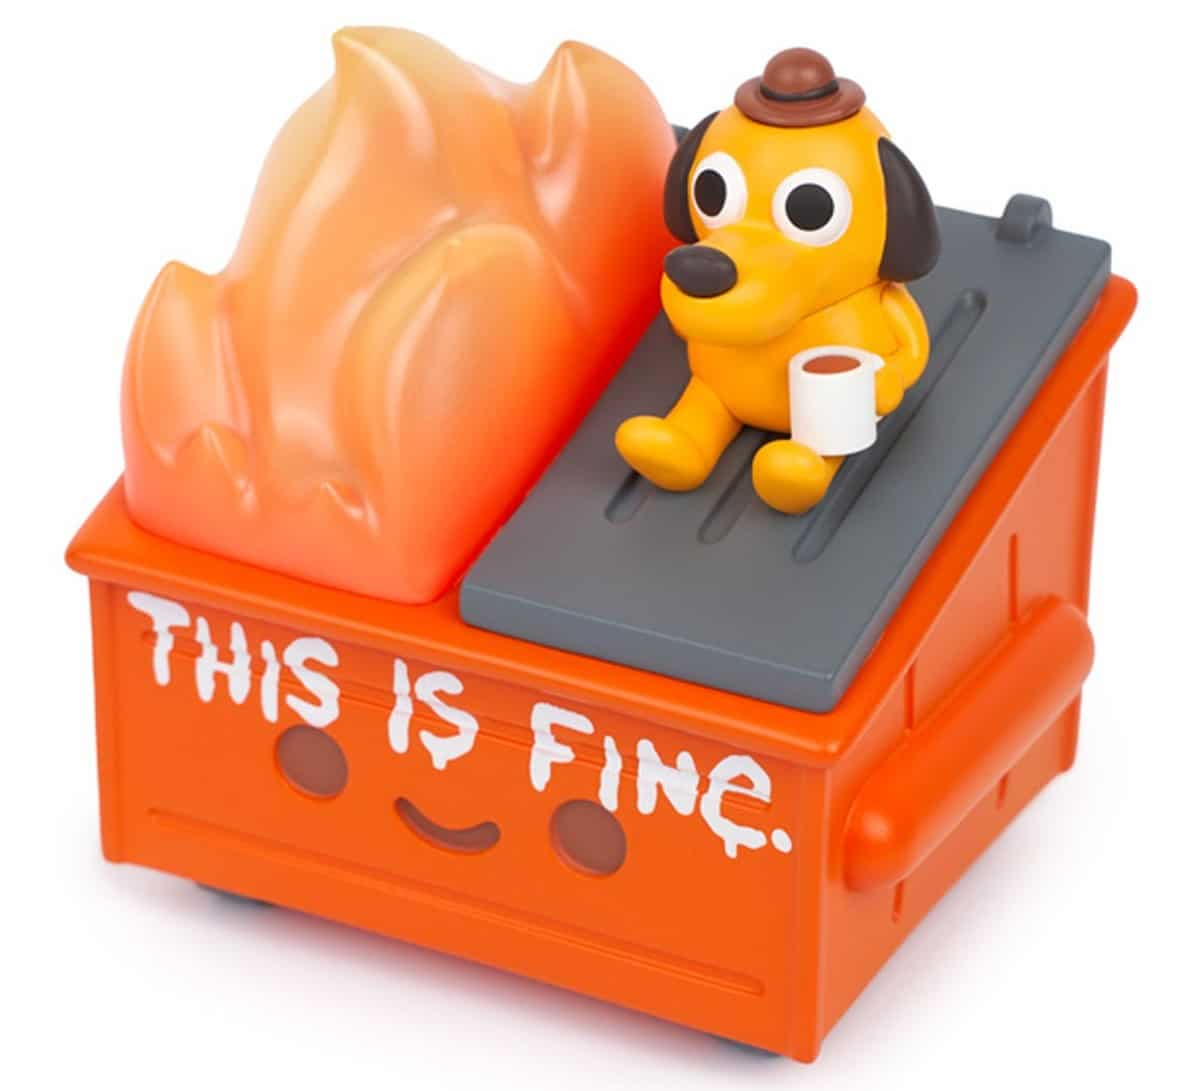 Dumpster Fire meets This is Fine dog in this adorable vinyl figure 17